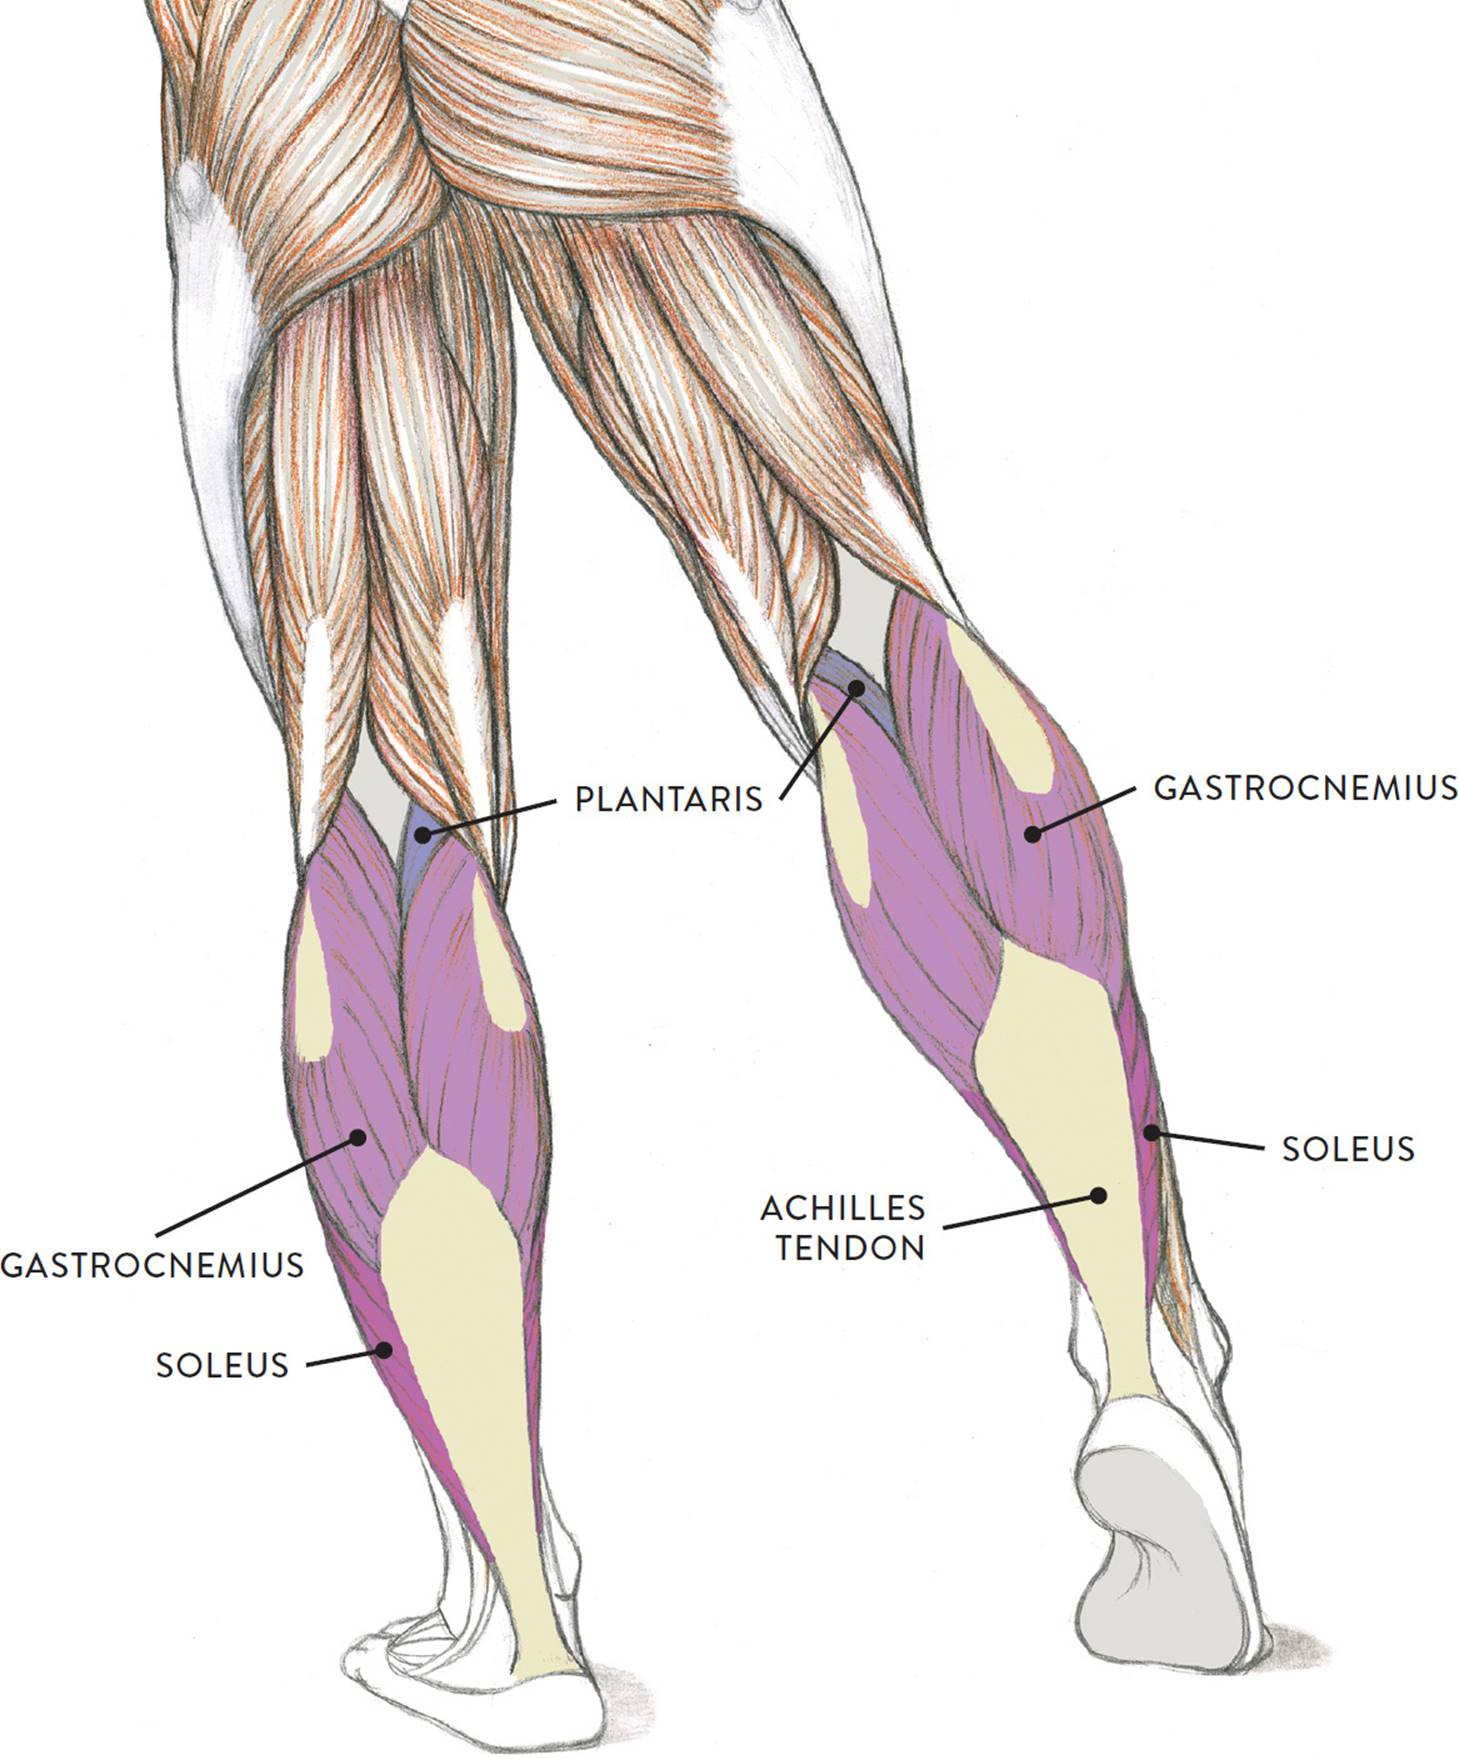 hight resolution of  more commonly known as the calf muscle is an impressive oval muscular shape occupying the upper half of the lower leg in the posterior region